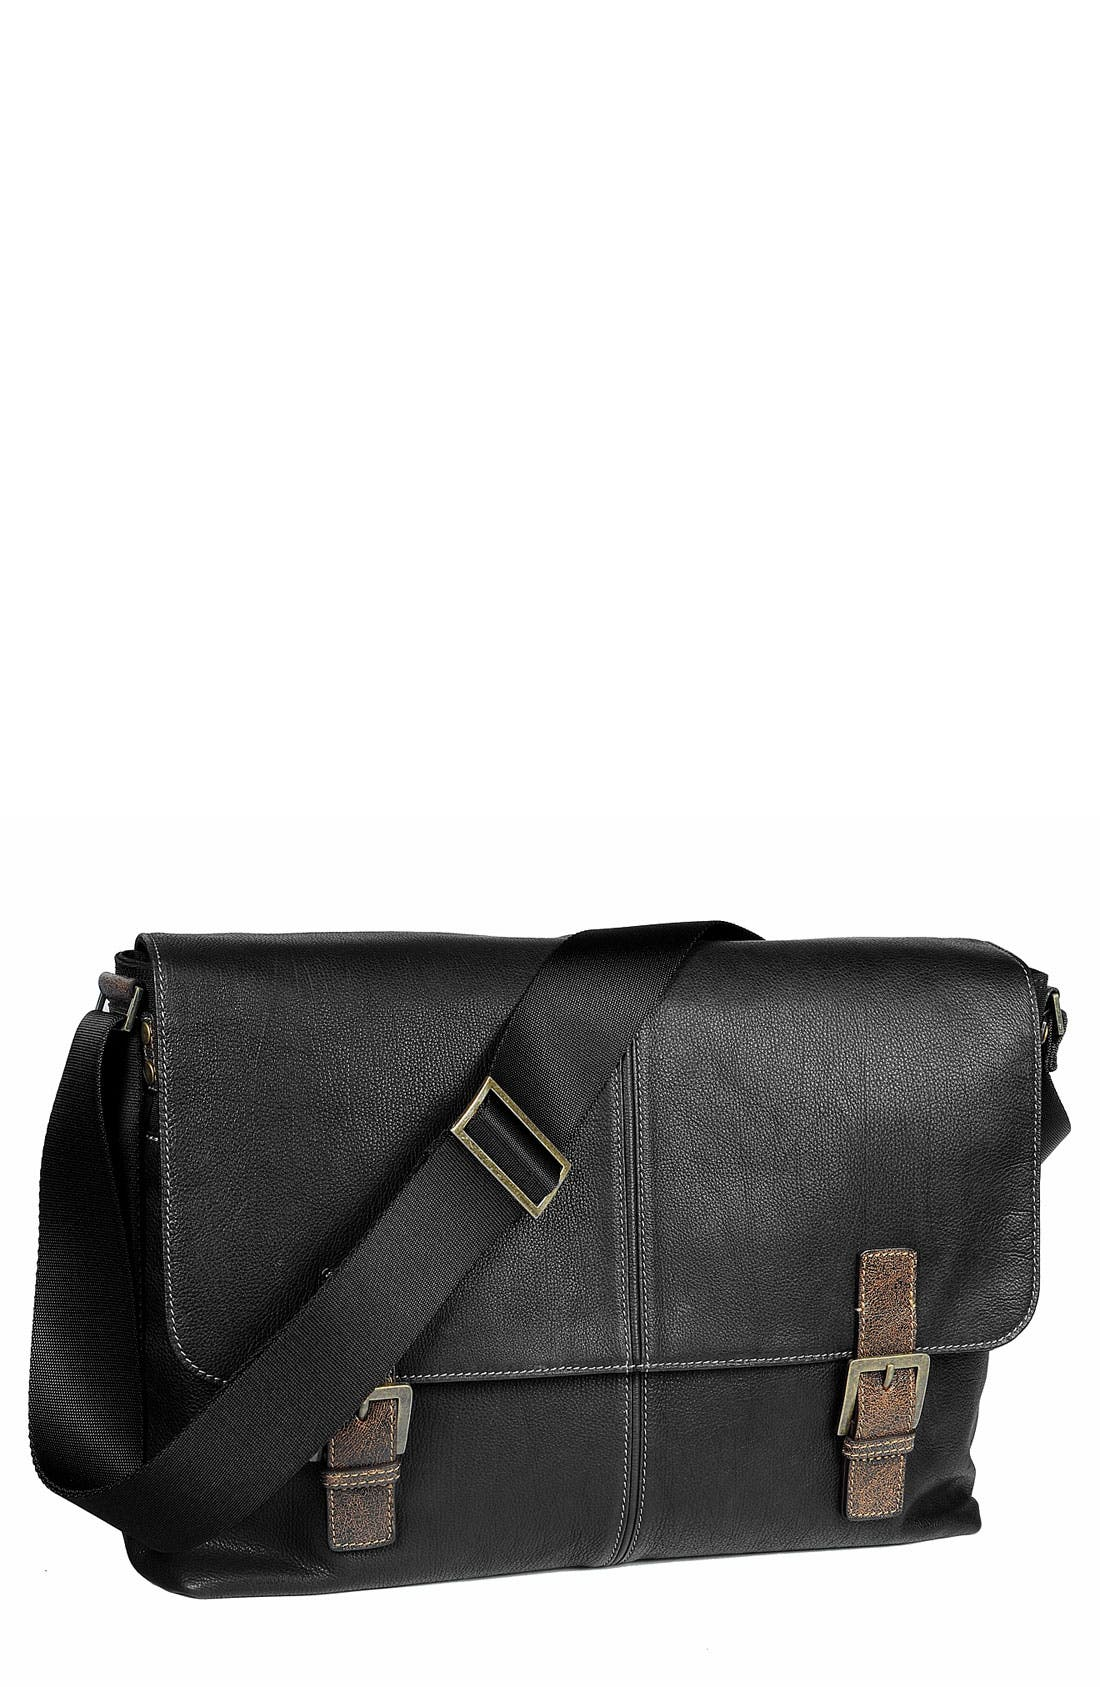 Alternate Image 1 Selected - Boconi Double Buckle Messenger Bag